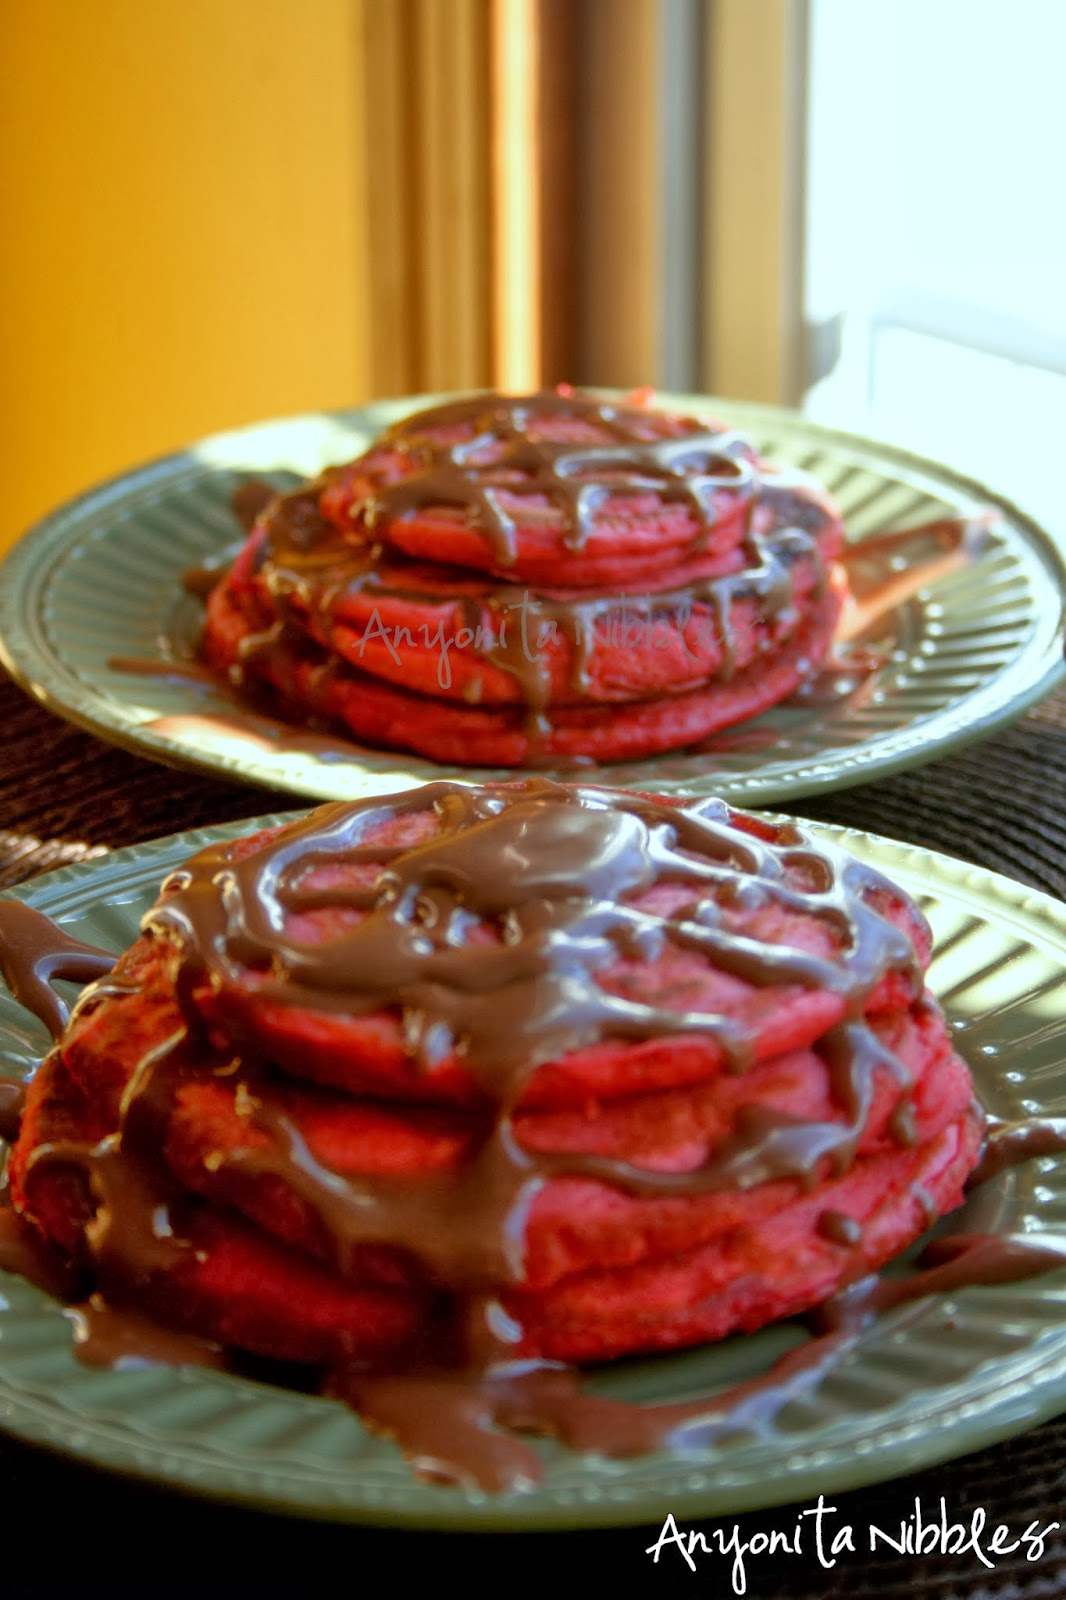 Two stacks of Red Velvet pancakes for Valentine's breakfast from www.anyonita-nibbles.com